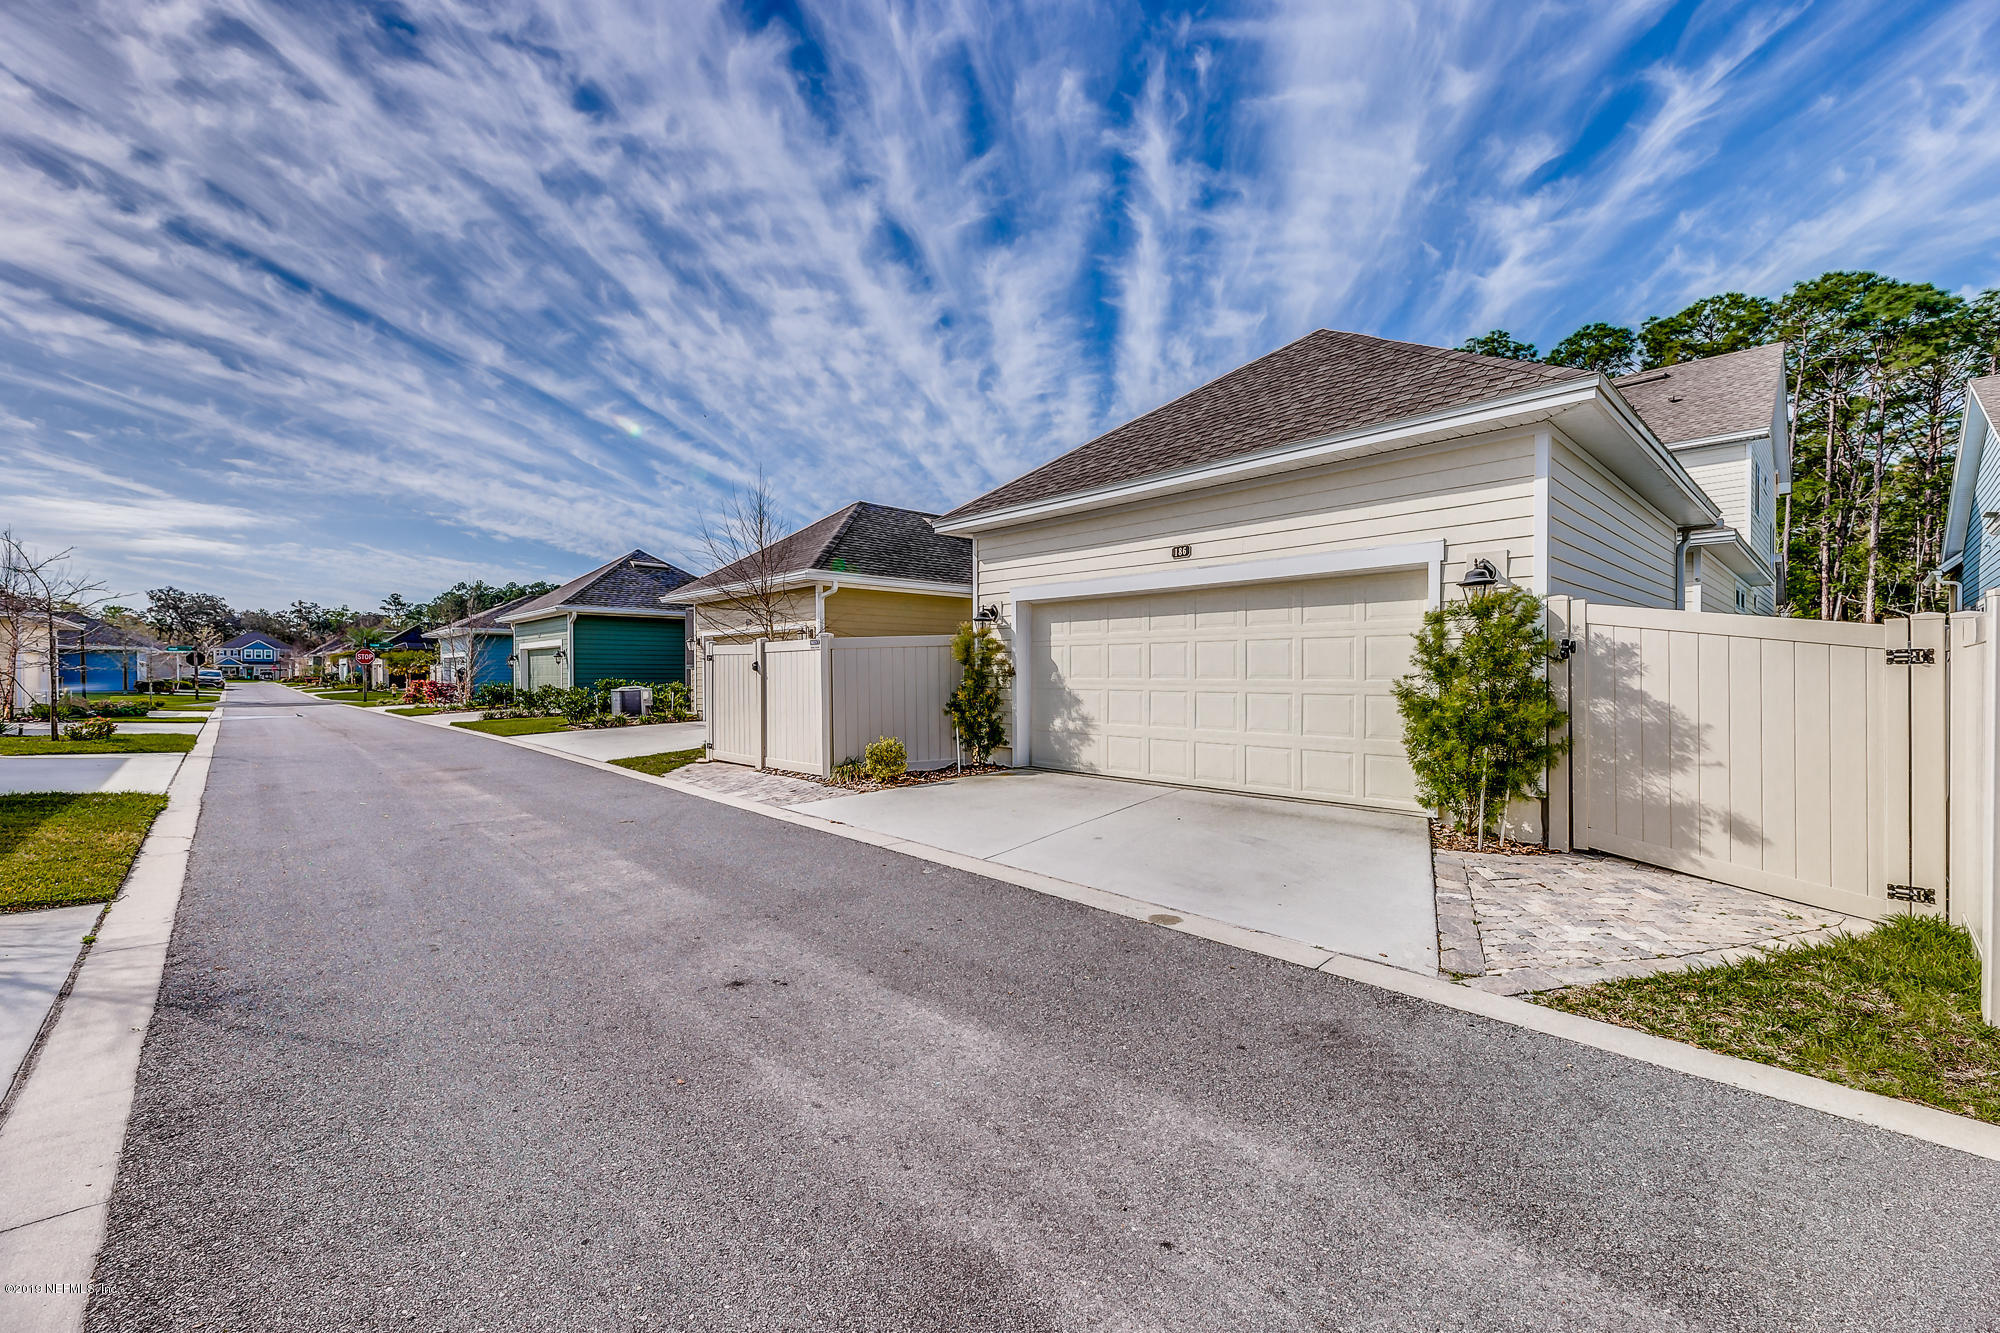 186 LONE EAGLE, PONTE VEDRA, FLORIDA 32081, 3 Bedrooms Bedrooms, ,2 BathroomsBathrooms,Residential - single family,For sale,LONE EAGLE,984749